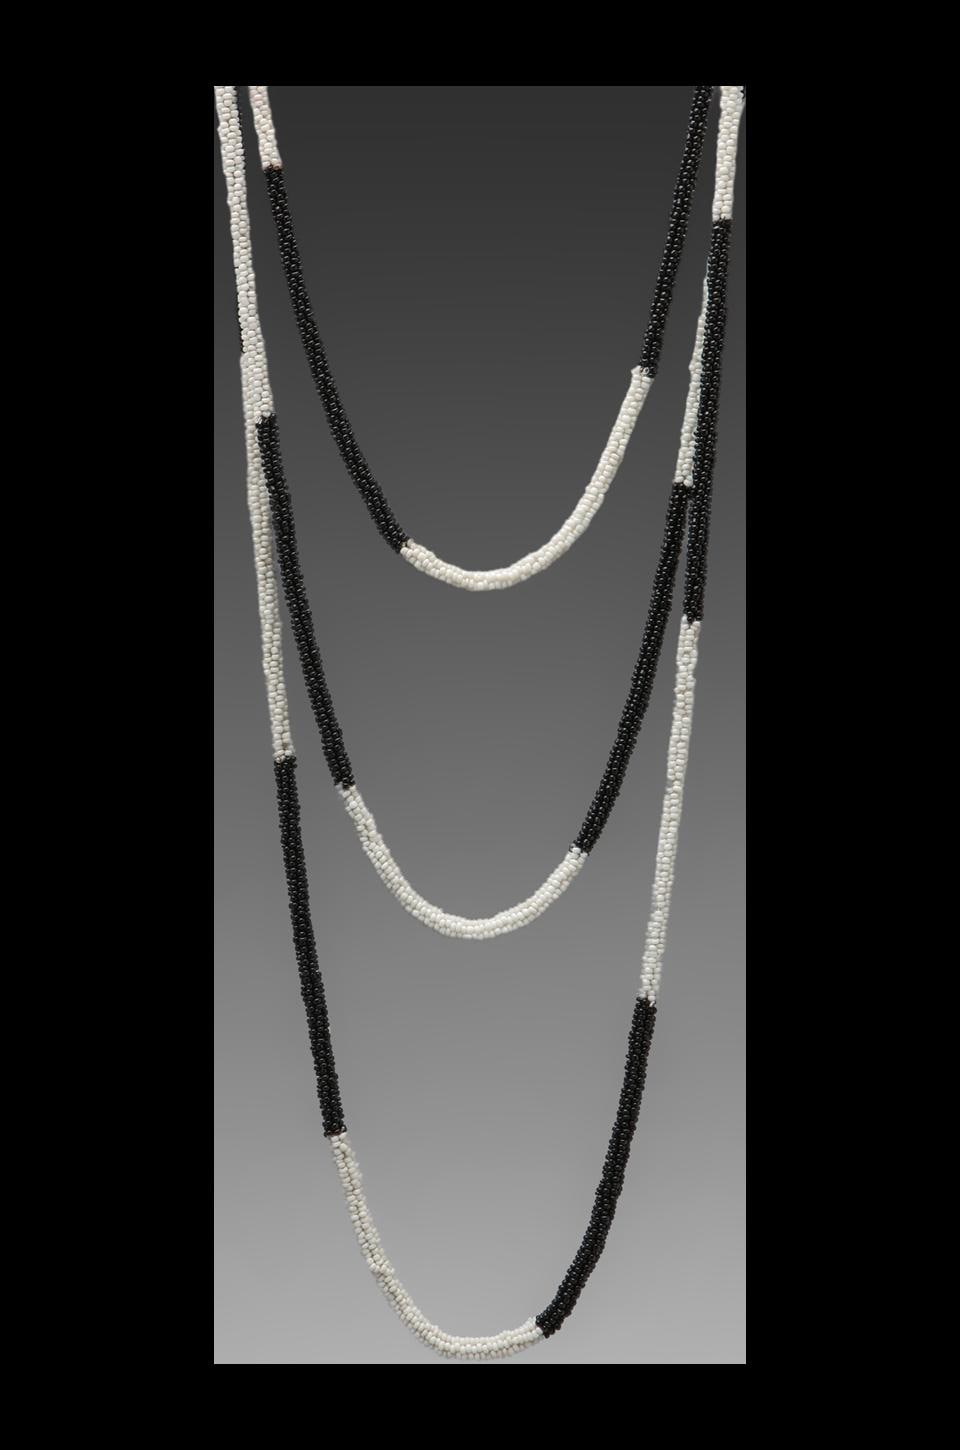 Kenneth Jay Lane Seed Bead Rope Necklace in White/Black